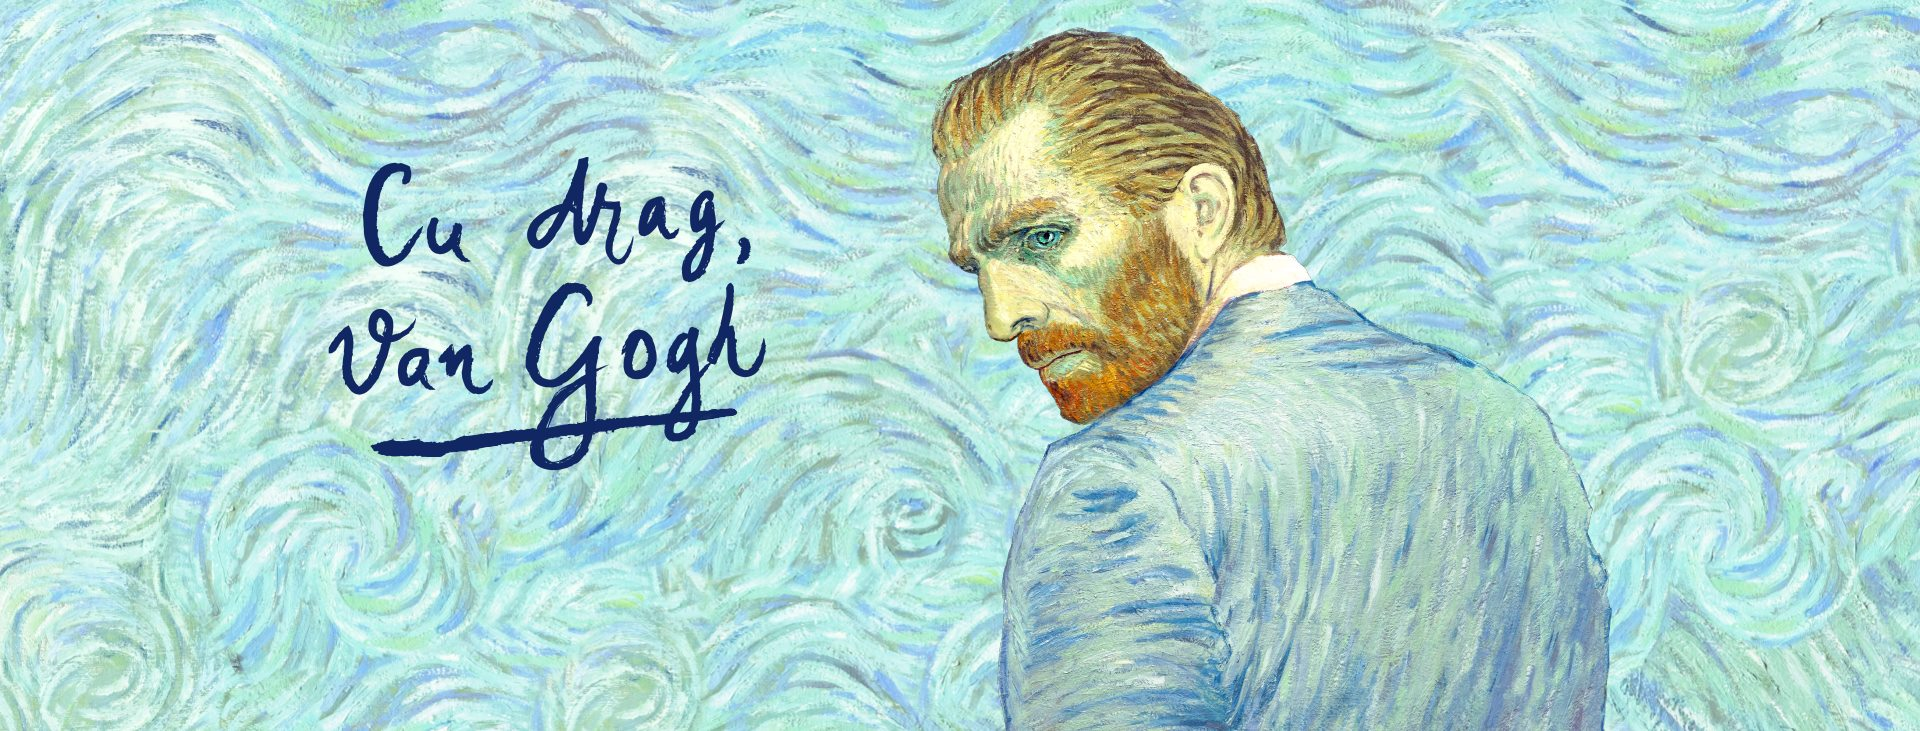 deschidre mare, Loving Vincent